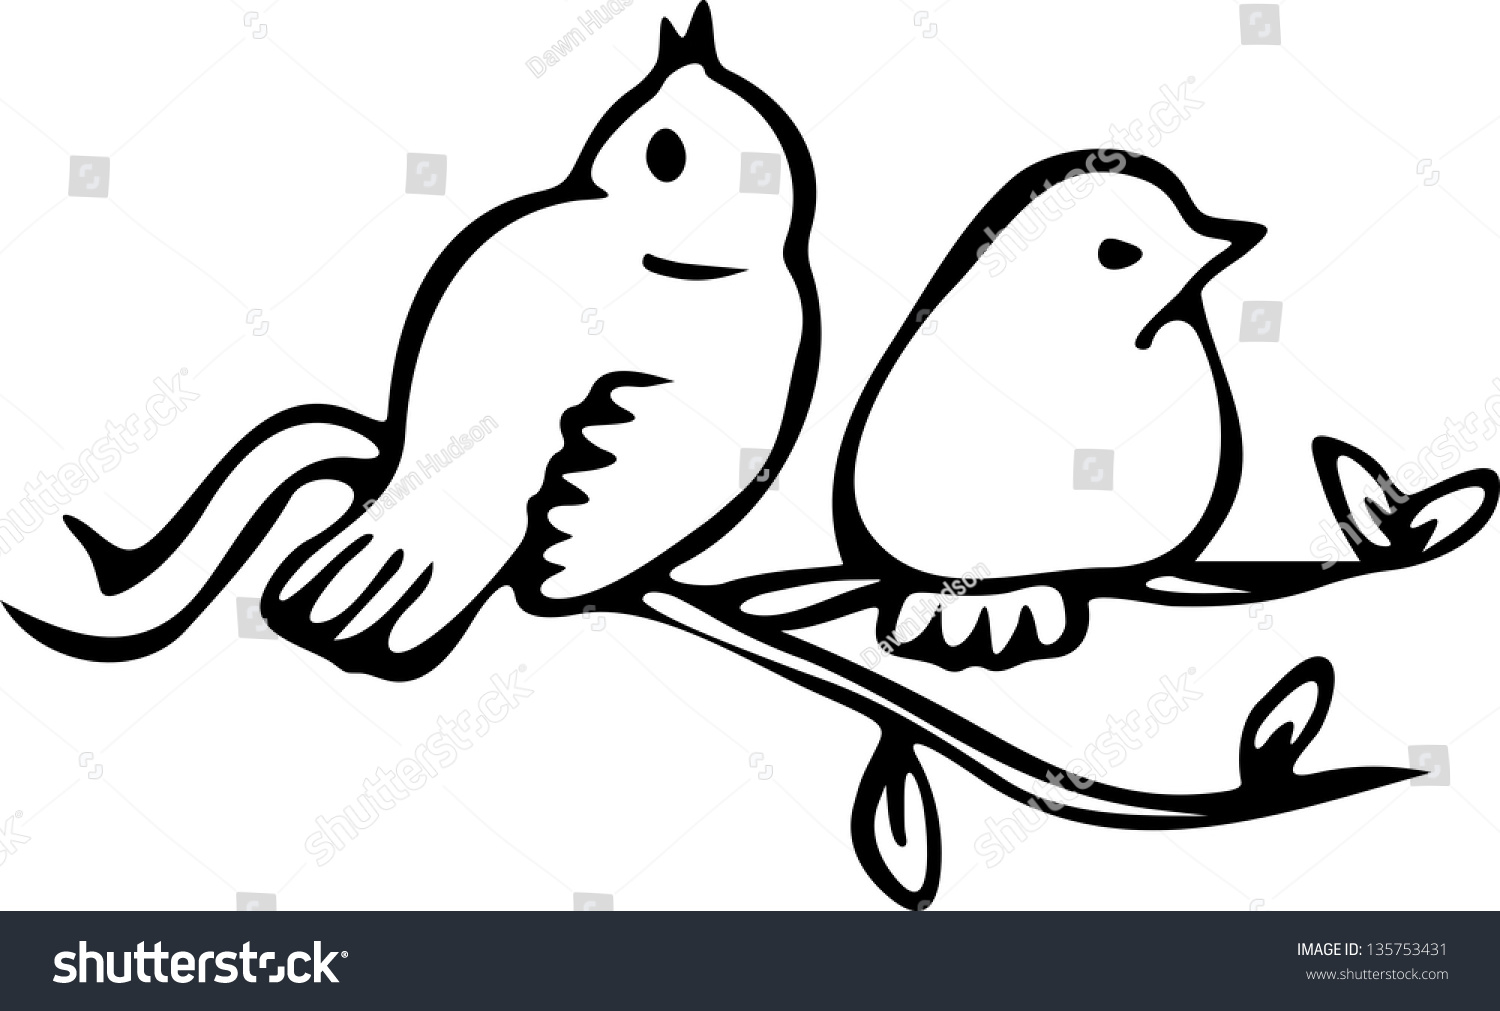 Simple Black And White Line Art : Simple black white line drawing two stock illustration